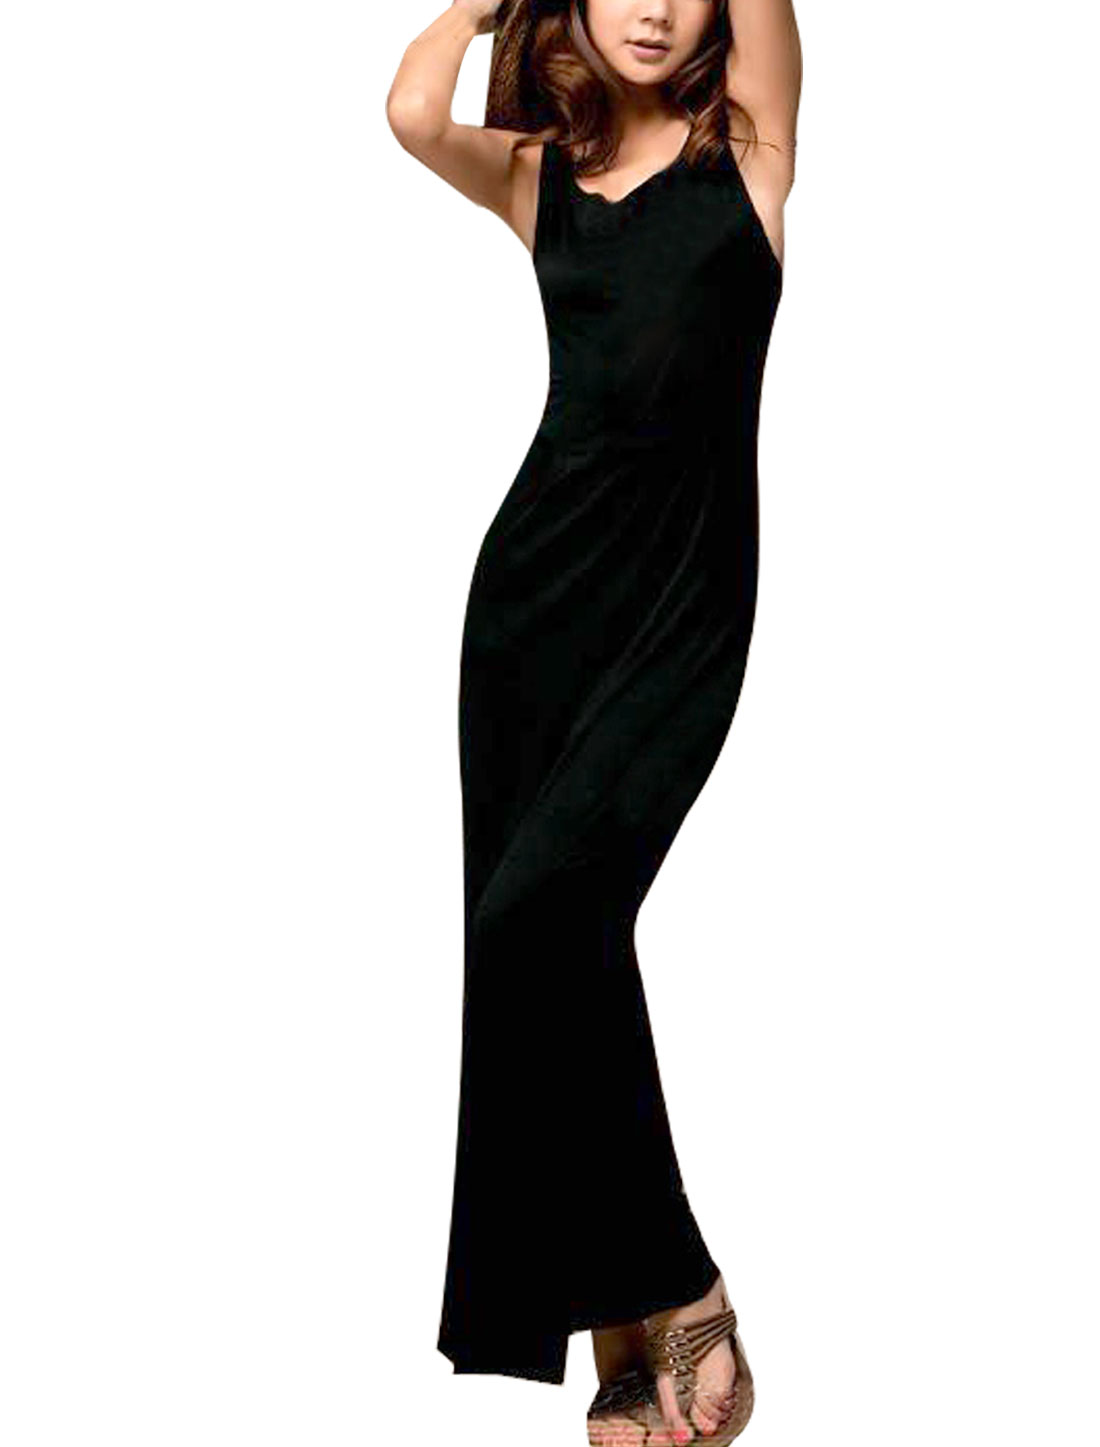 Ladies Scoop Neck Deep V-Back Sleeveless Maxi Dress Black M